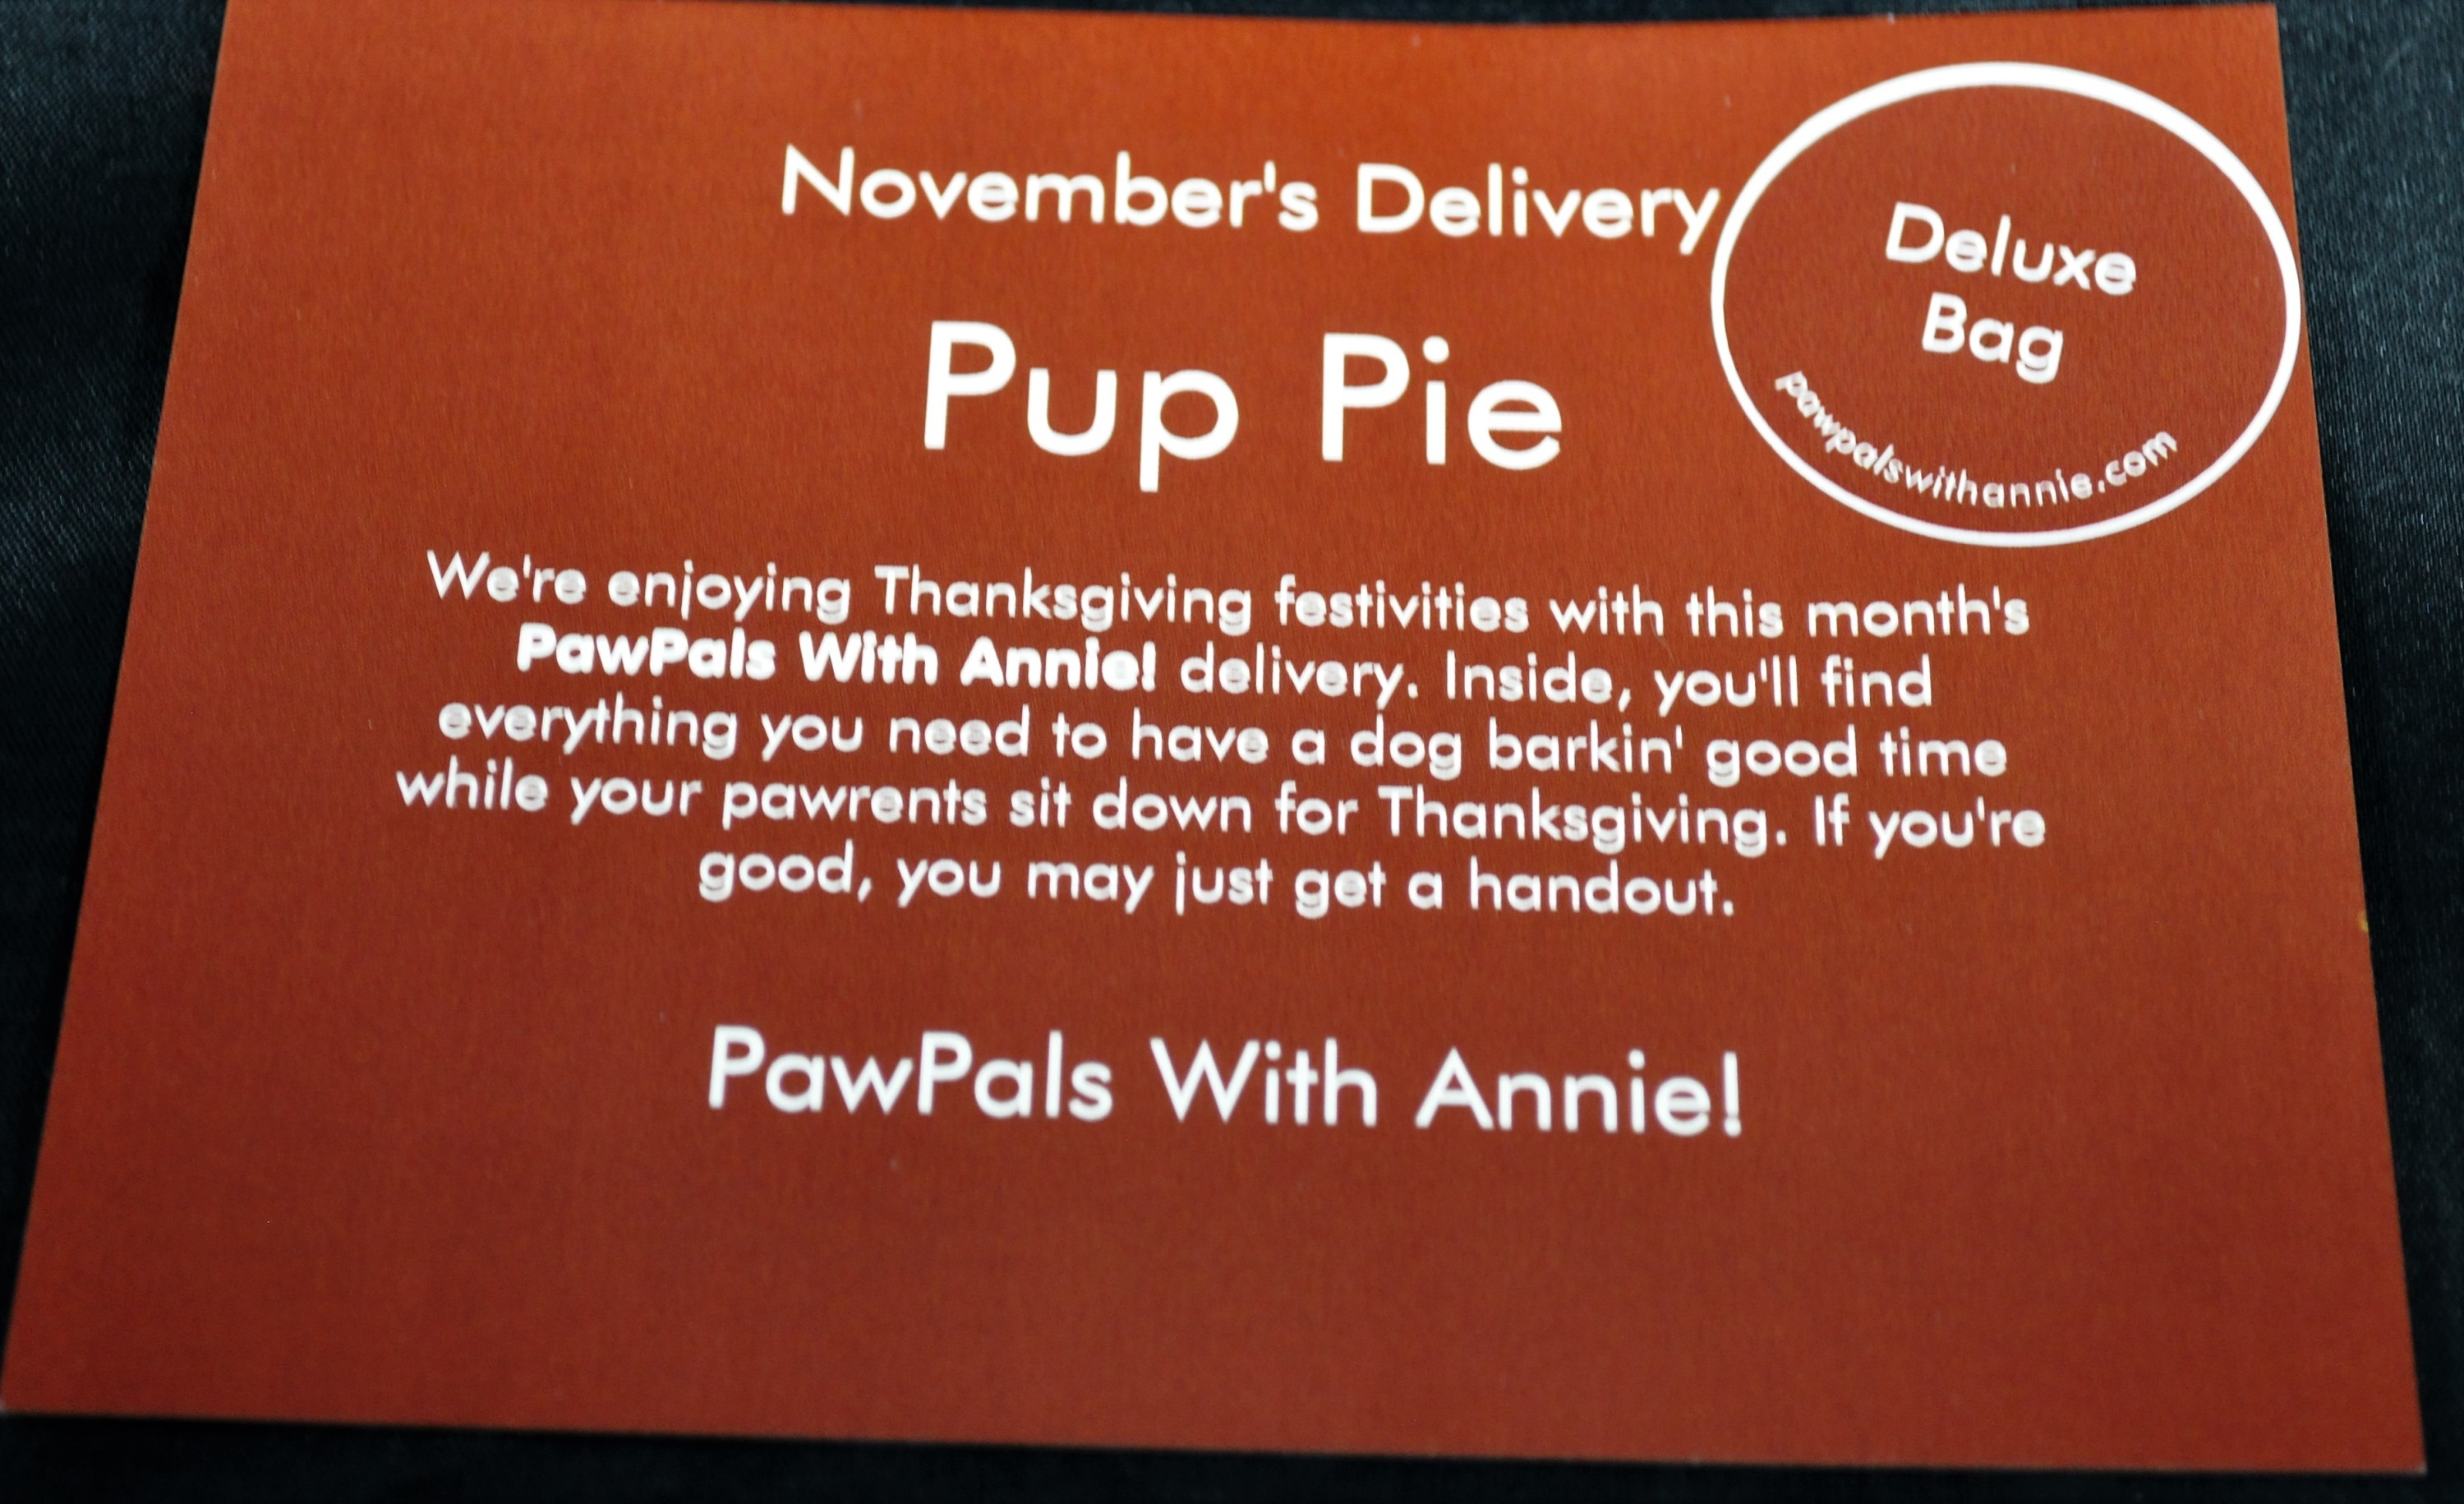 paw-pals-with-annie-november-2016-insert-1